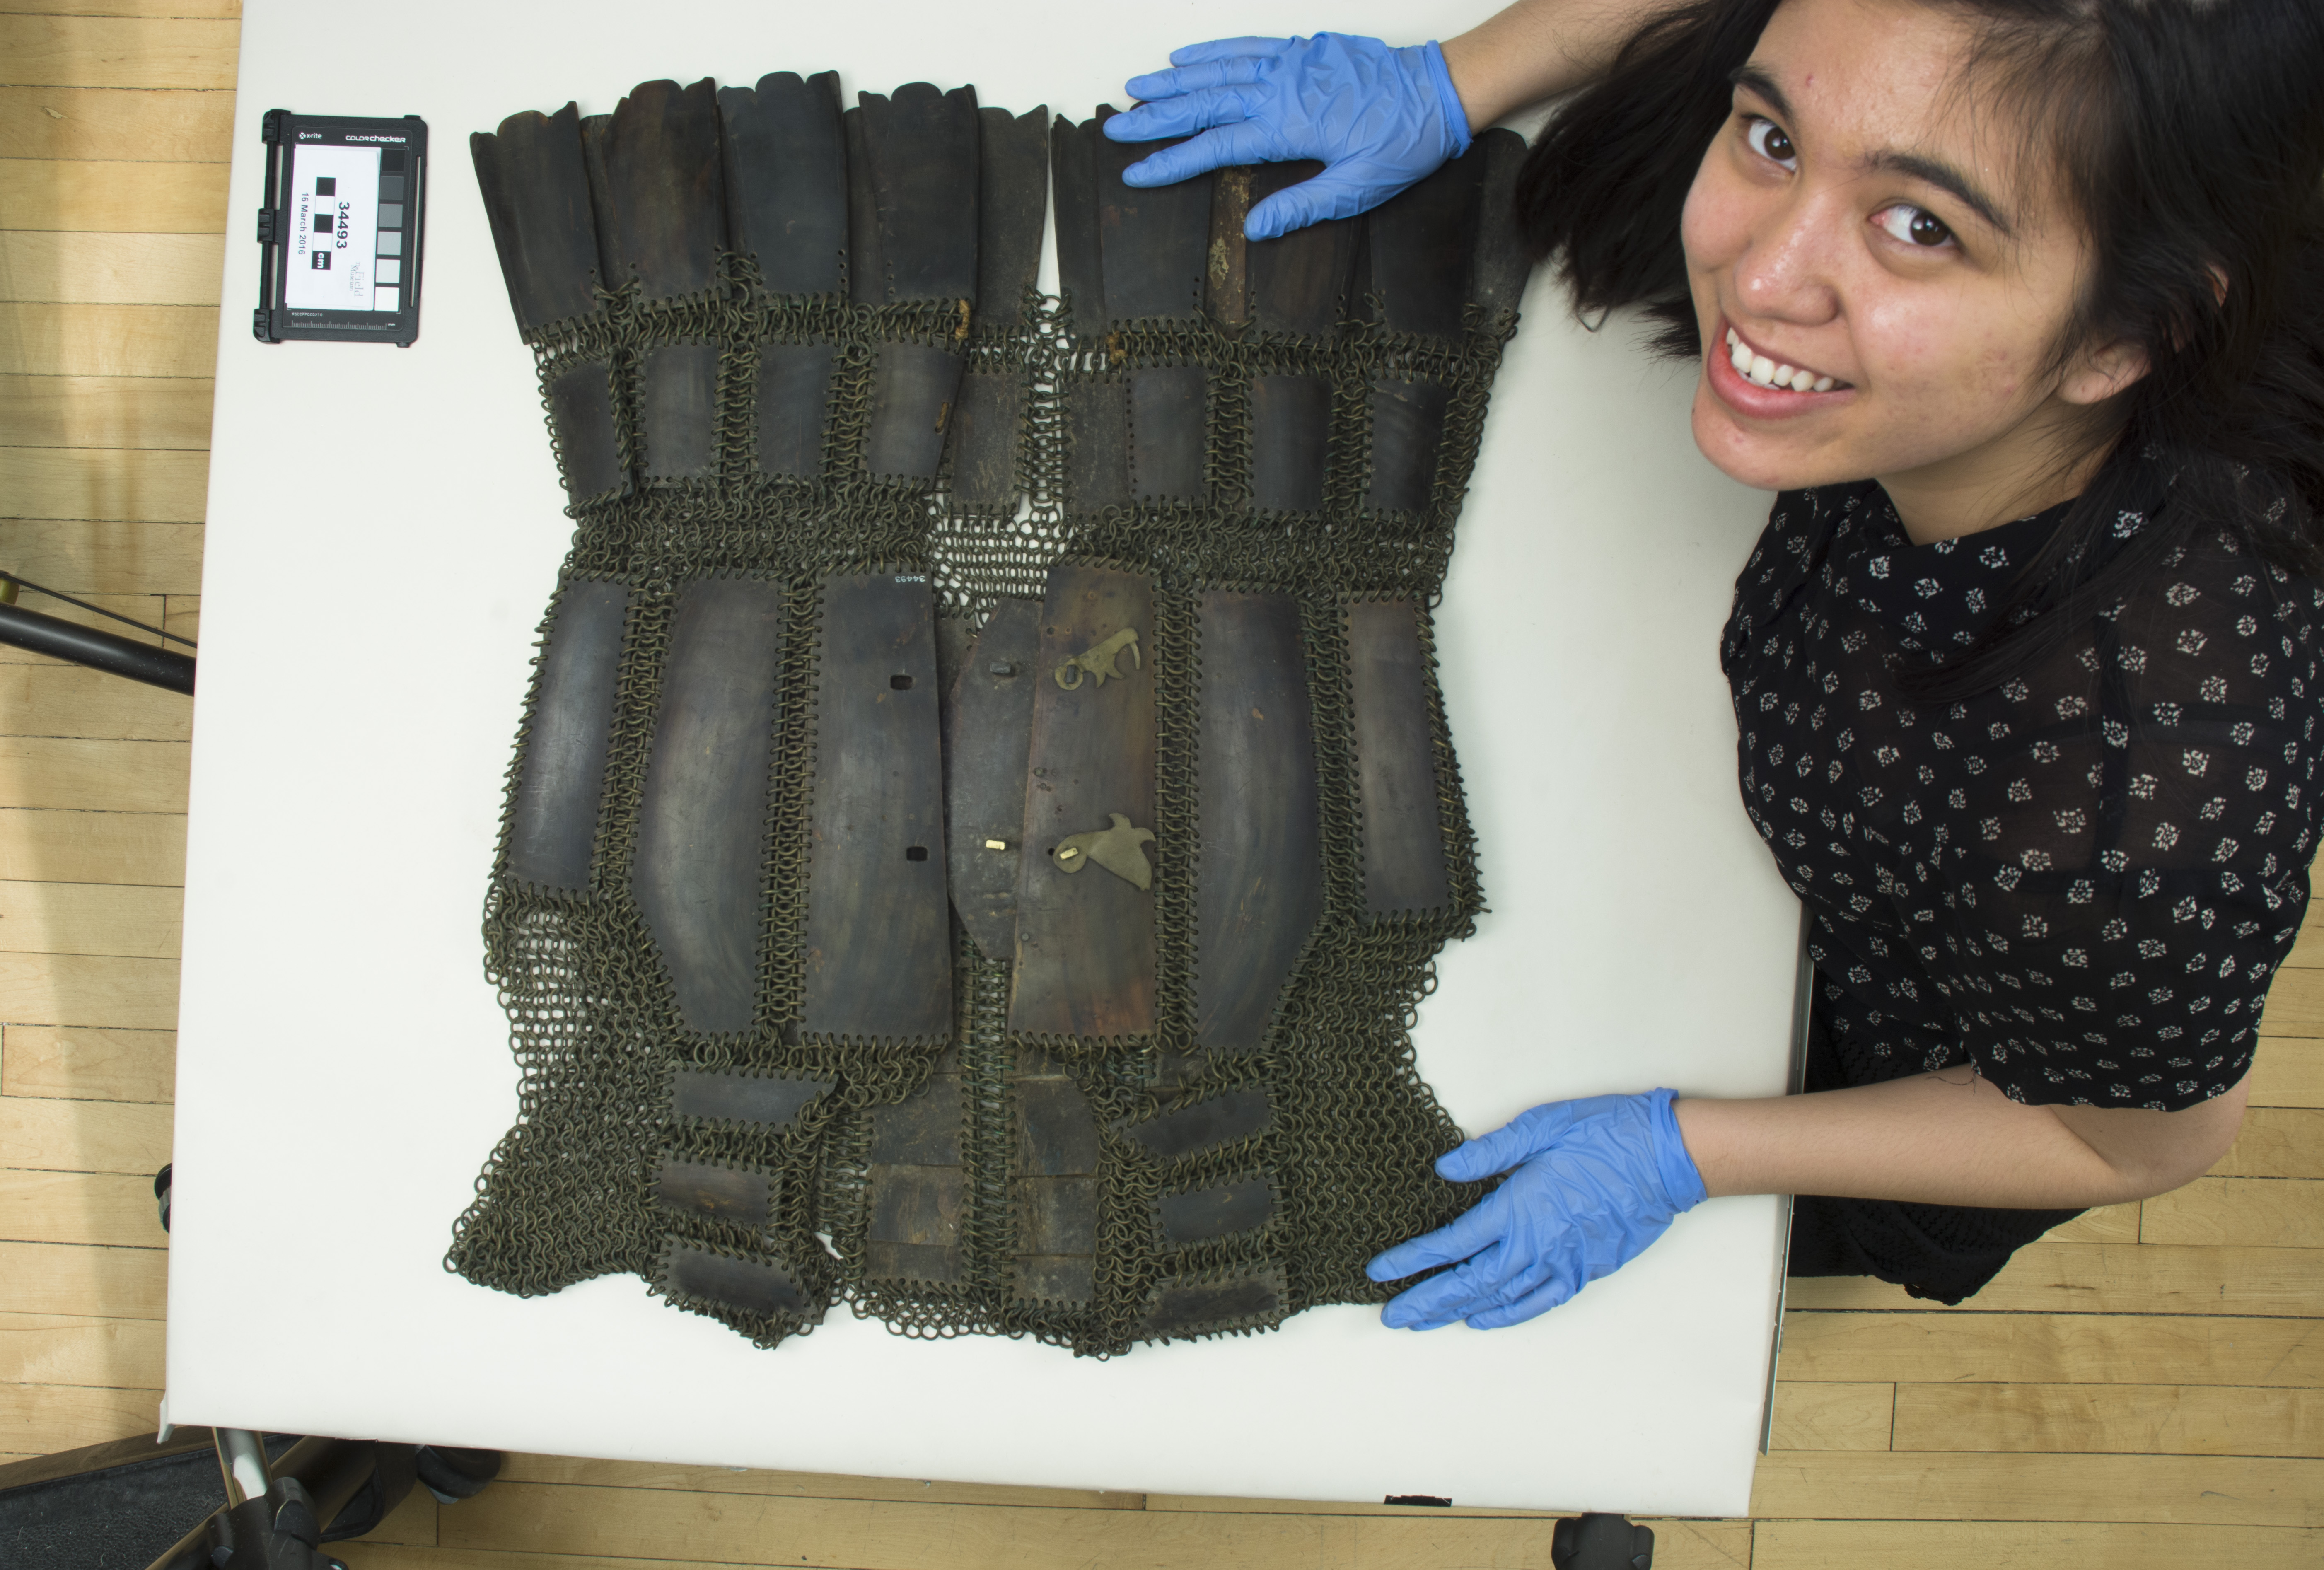 Loren photographing a suit of carabao horn armor. [Copyright] Field Museum of Natural History - CC BY-NC